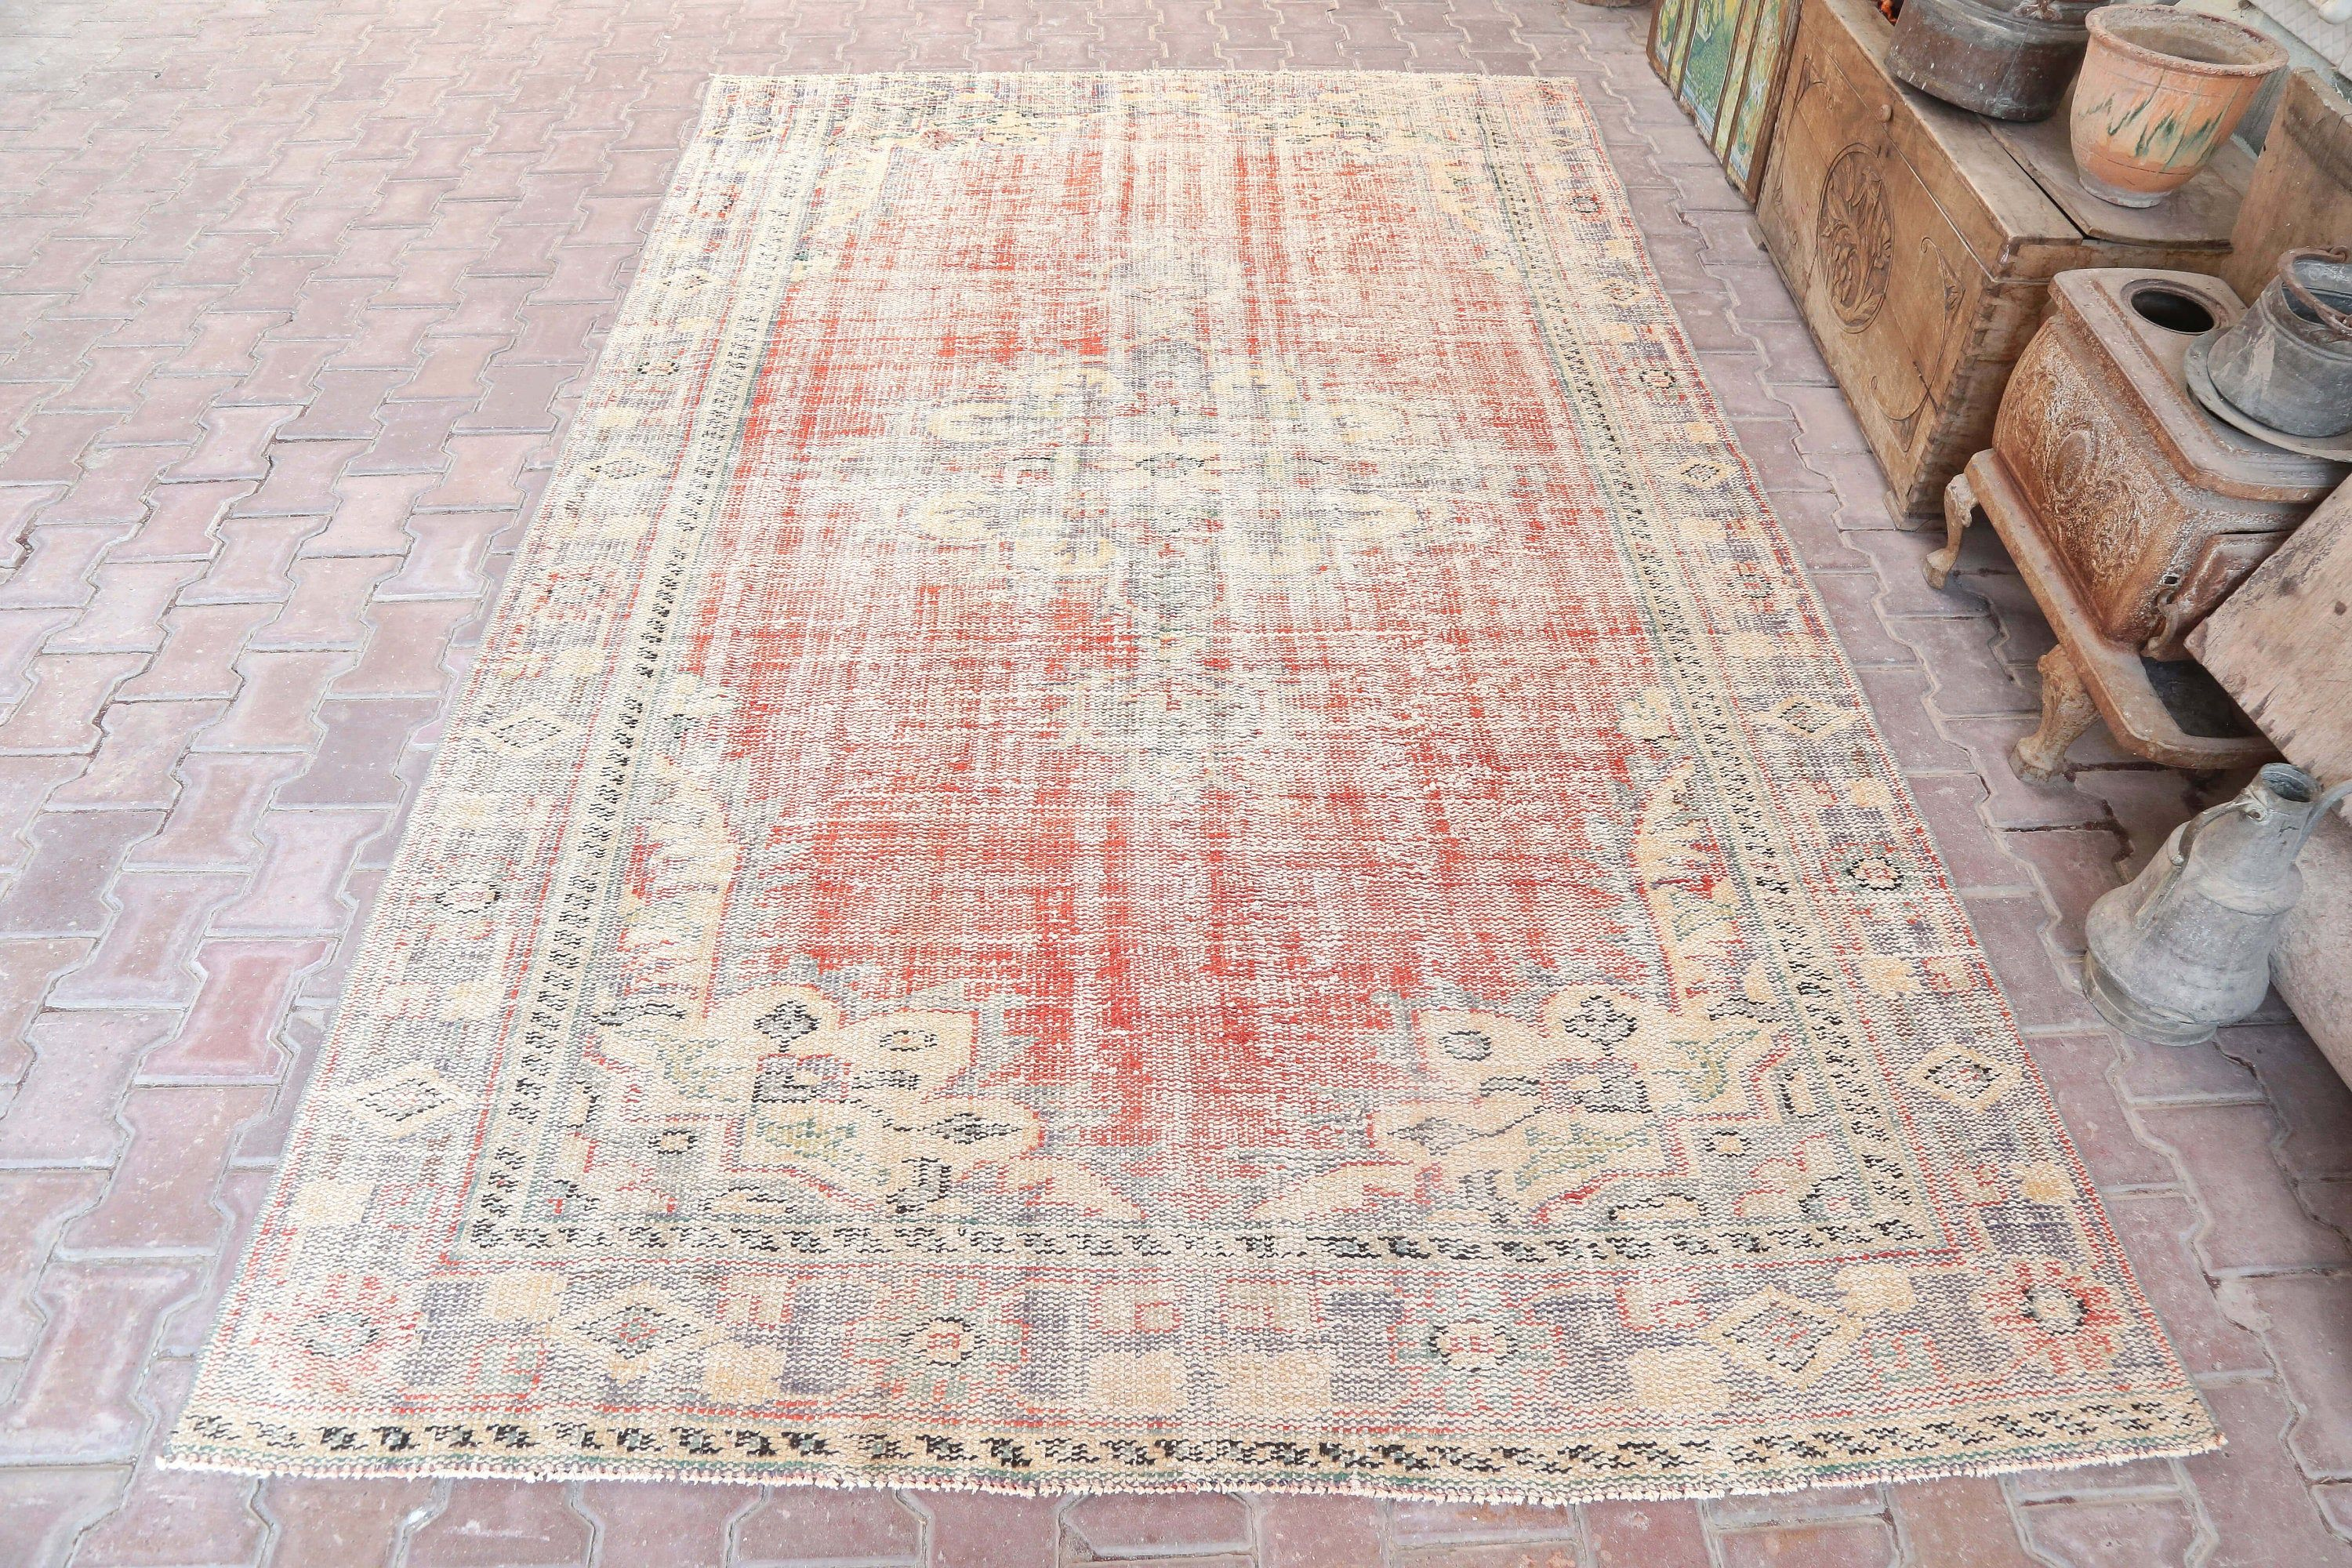 6x9 9 Rugvintage Ruganatolian Rugdecorative Rugover Etsy Rugs Rugs On Carpet Vintage Area Rugs